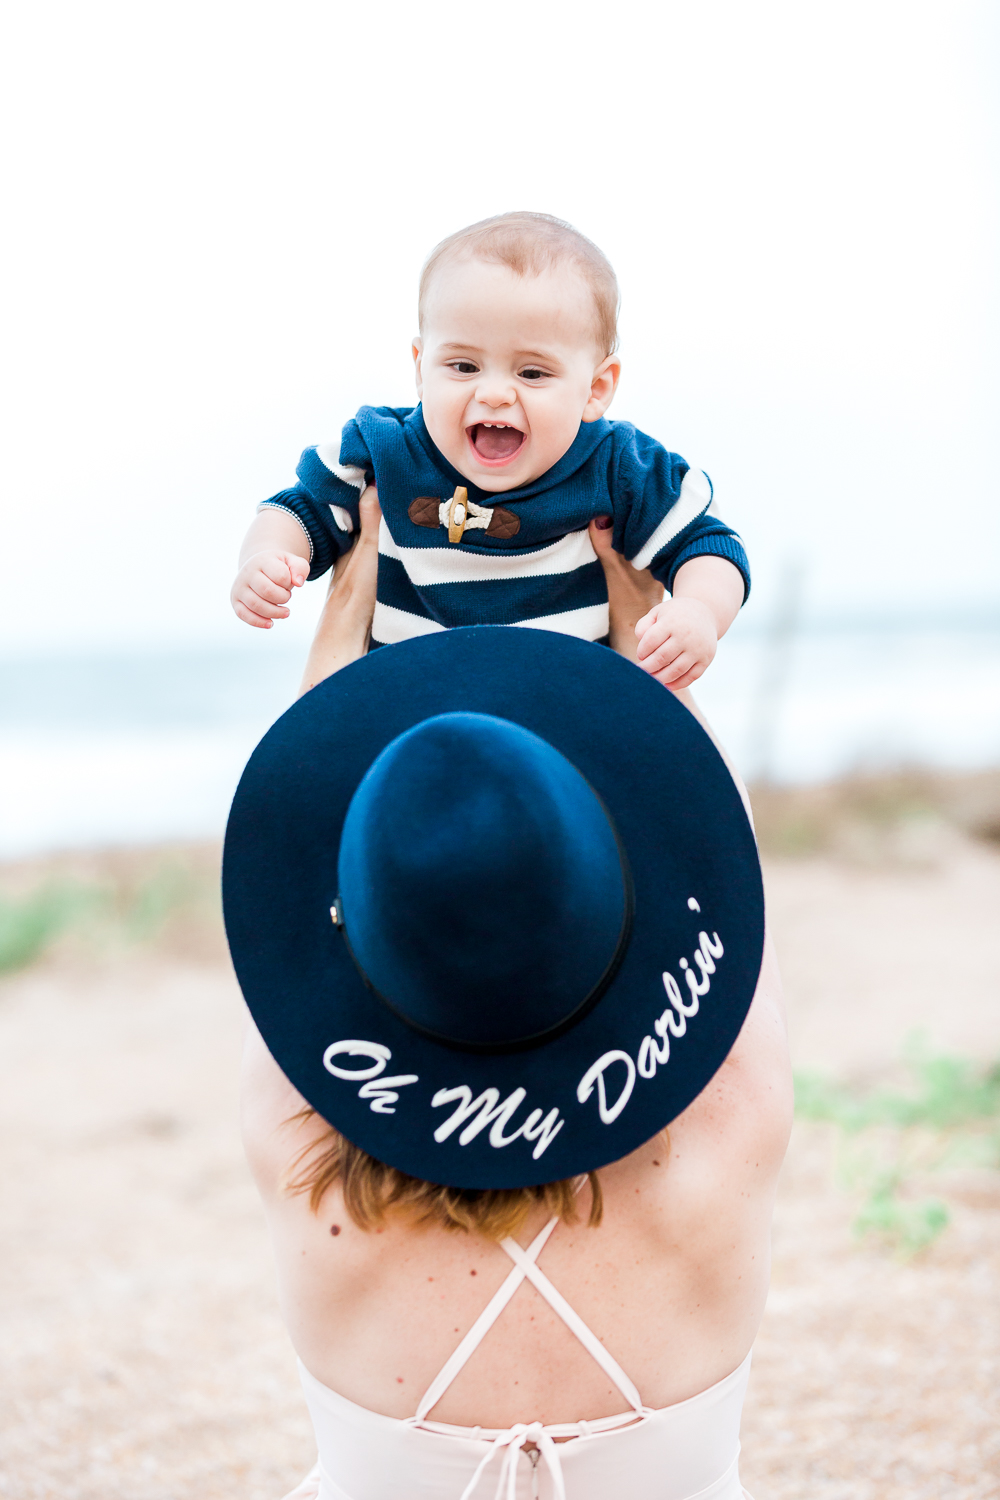 family photoshoot at the beach with a toddler